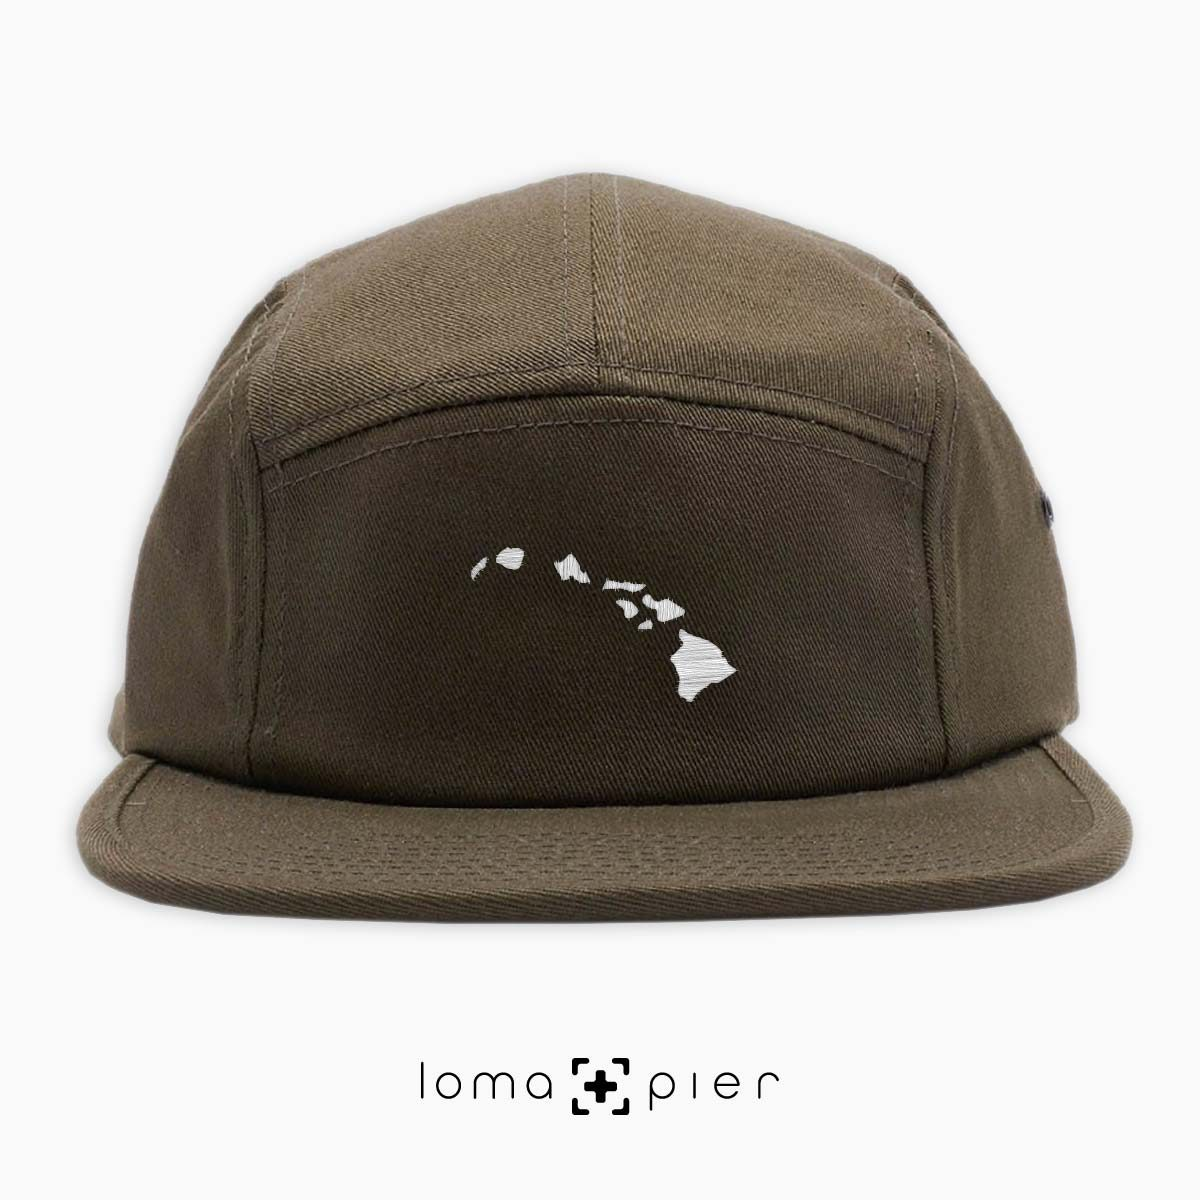 HAWAIIAN ISLANDS icon embroidered on an olive green cotton 5-panel hat by loma+pier hat store